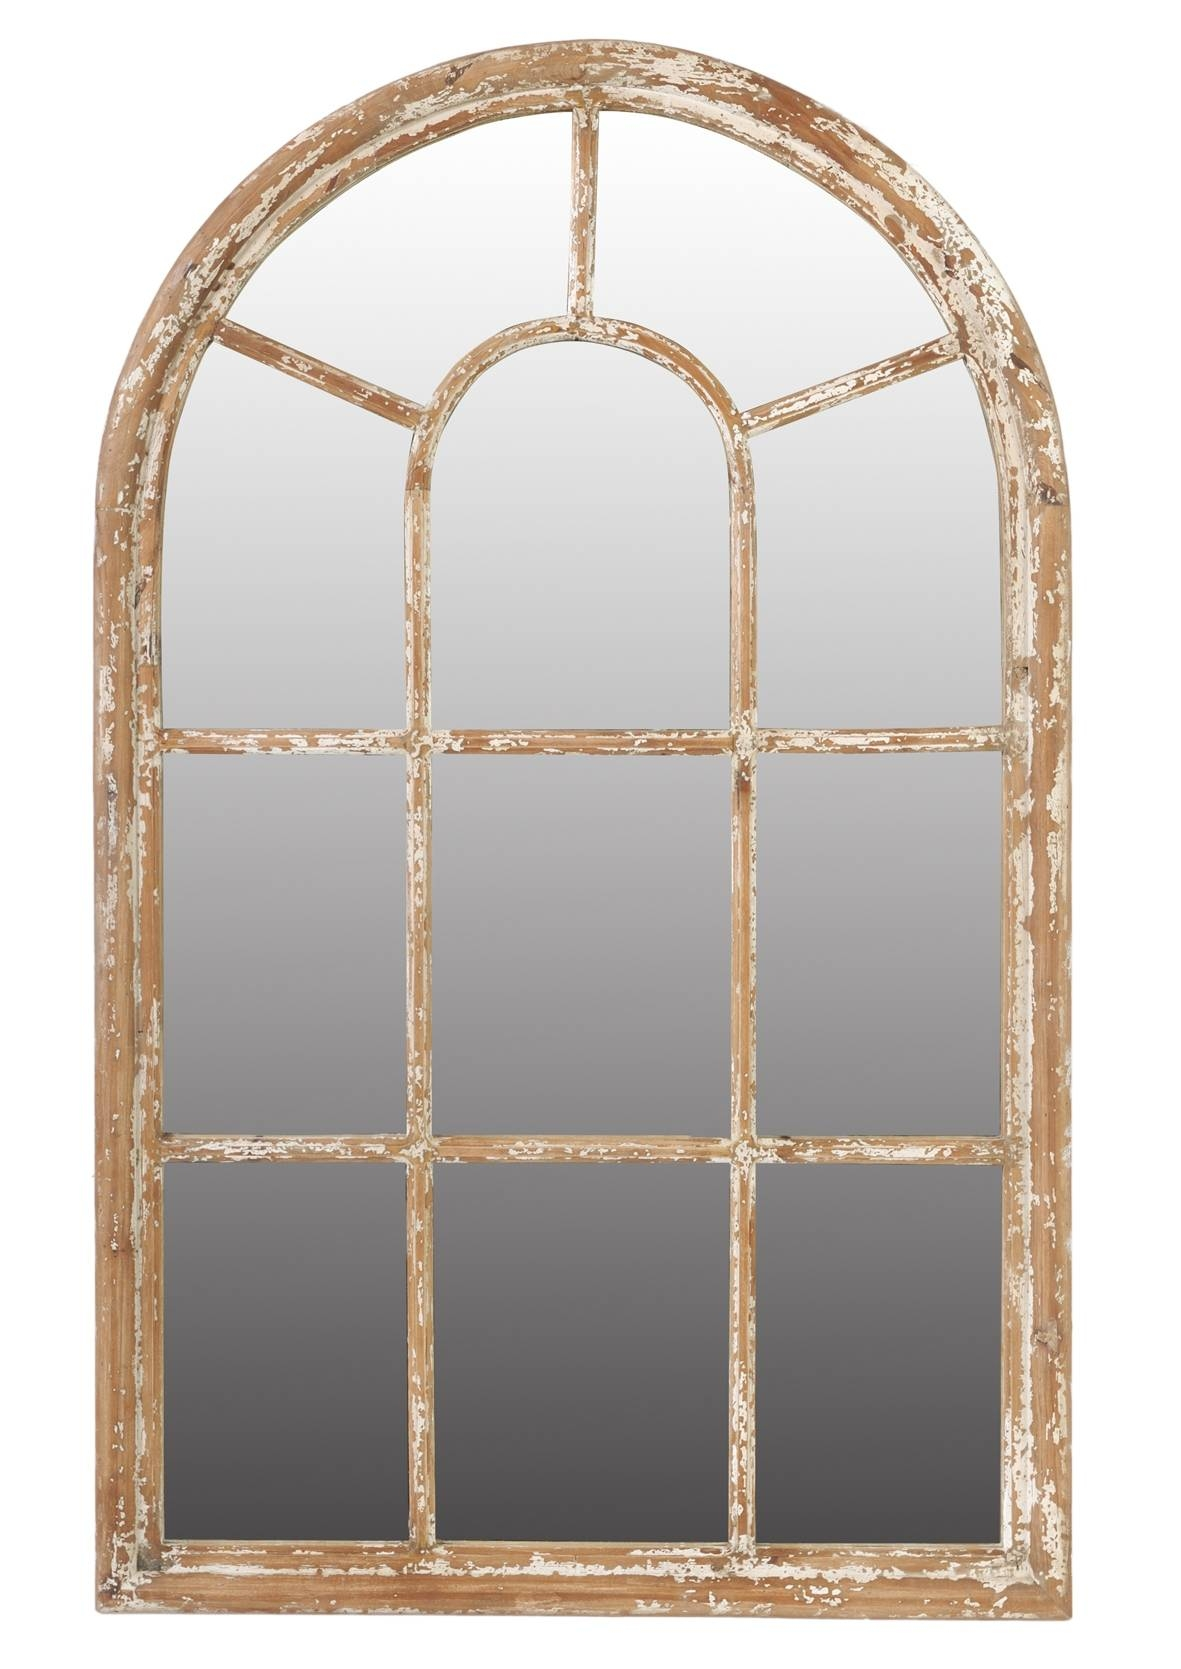 Furniture: Captivating Arched Mirror For Home Furniture Ideas intended for White Arched Window Mirrors (Image 16 of 25)